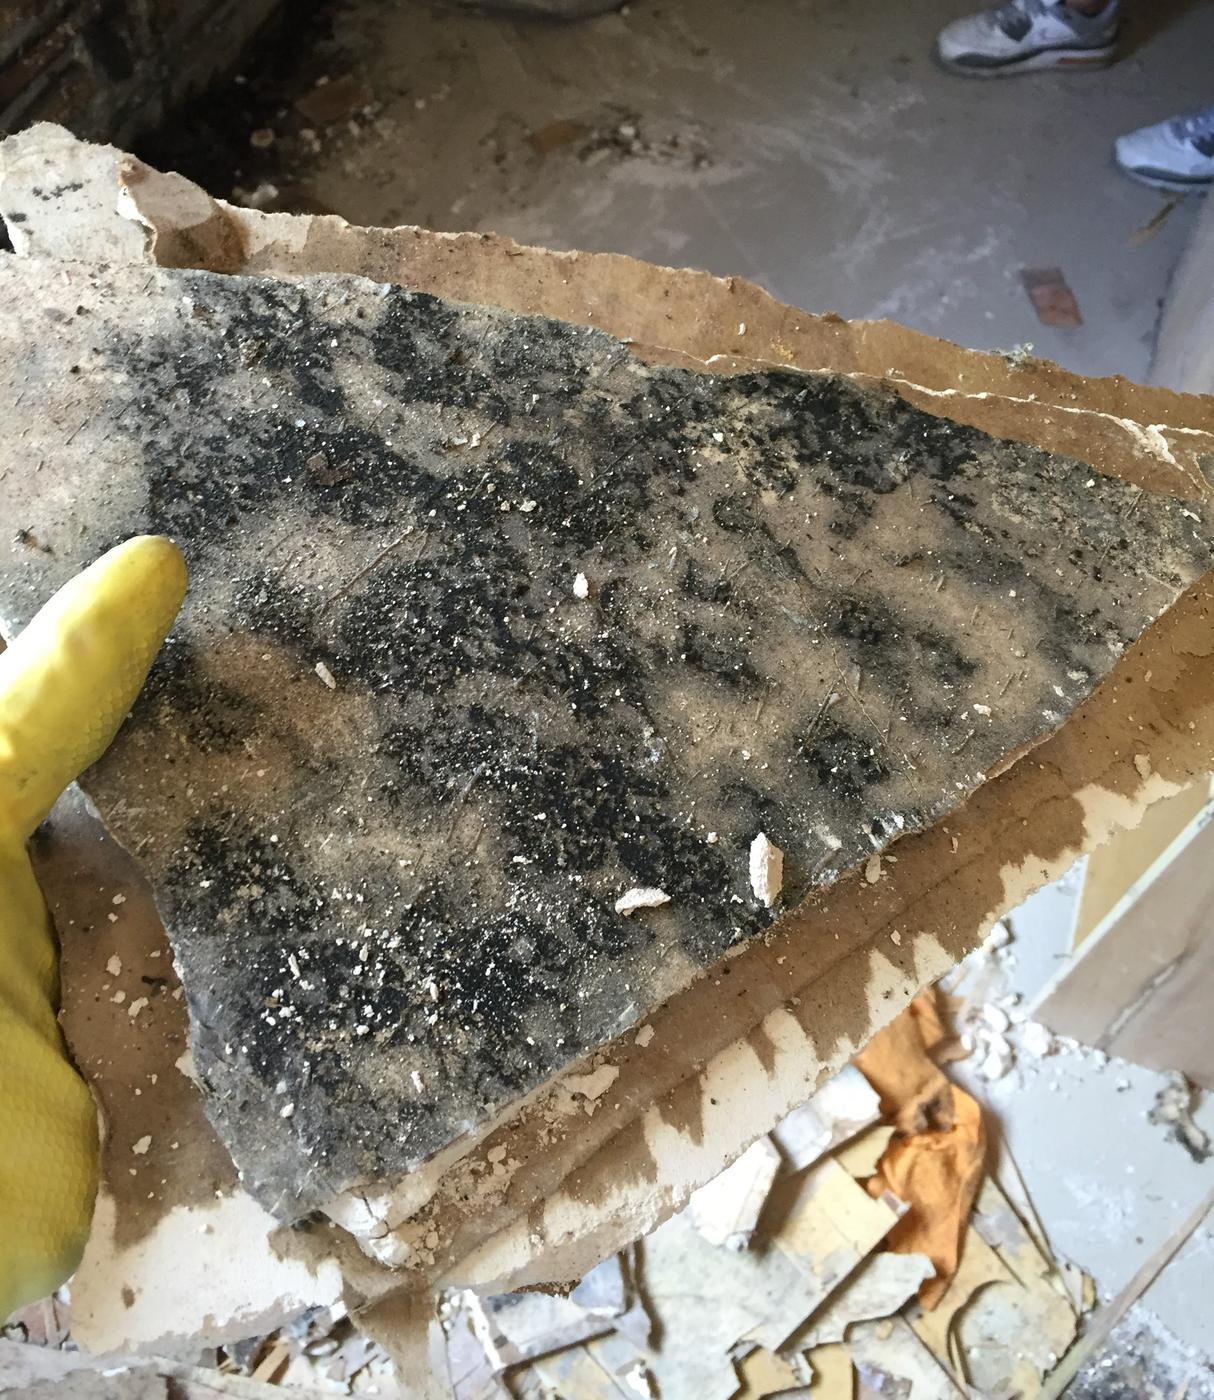 mold from the inside of a drywall from a remediation AdvantaClean did in Miramar, FL